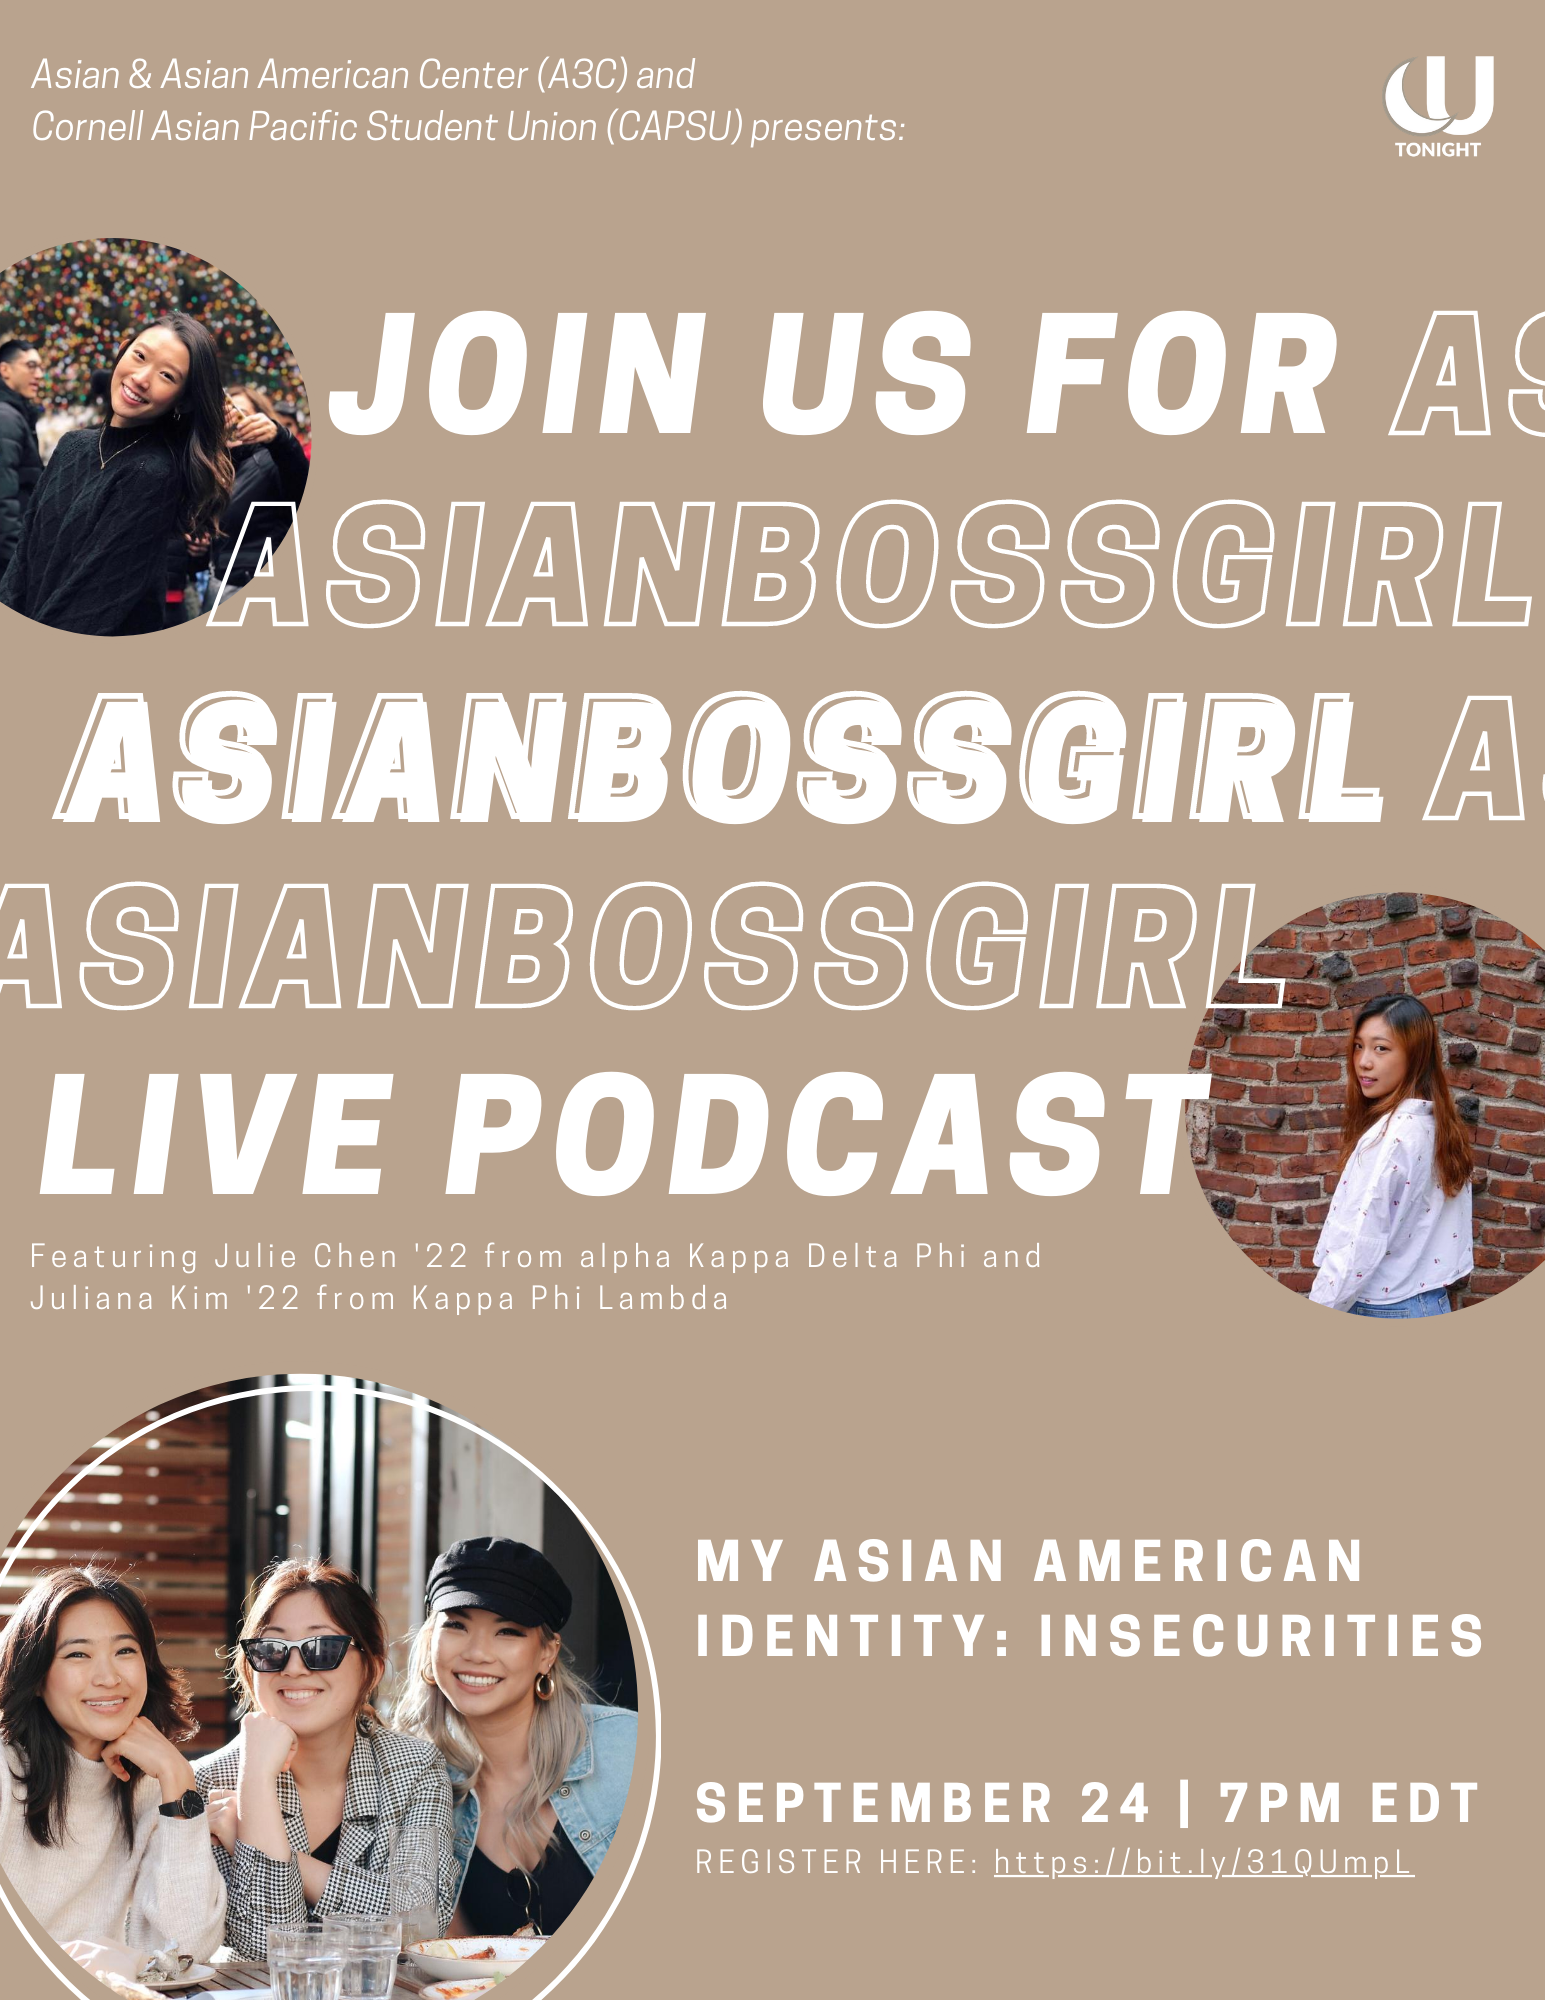 "Join us on Thursday, September 24 at 7pm EST for Asian Boss Girl (ABG) Live Podcast ""My Asian American Identity: Insecurities. The co-sponsors for the event are Cornell Asian Pacific Student Union (CAPSU), alpha Kappa Delta Phi (aKDPhi) Sorority, Inc., and Kappa Phi Lambda (KPL) Sorority, Inc. Registration is required at https://bit.ly/31QUmpL. A3C and CAPSU will be hosting a live podcast ""My Asian American Identity: Insecurities"" with Asian Boss Girl (ABG) and members from aKDPhi and KPL."